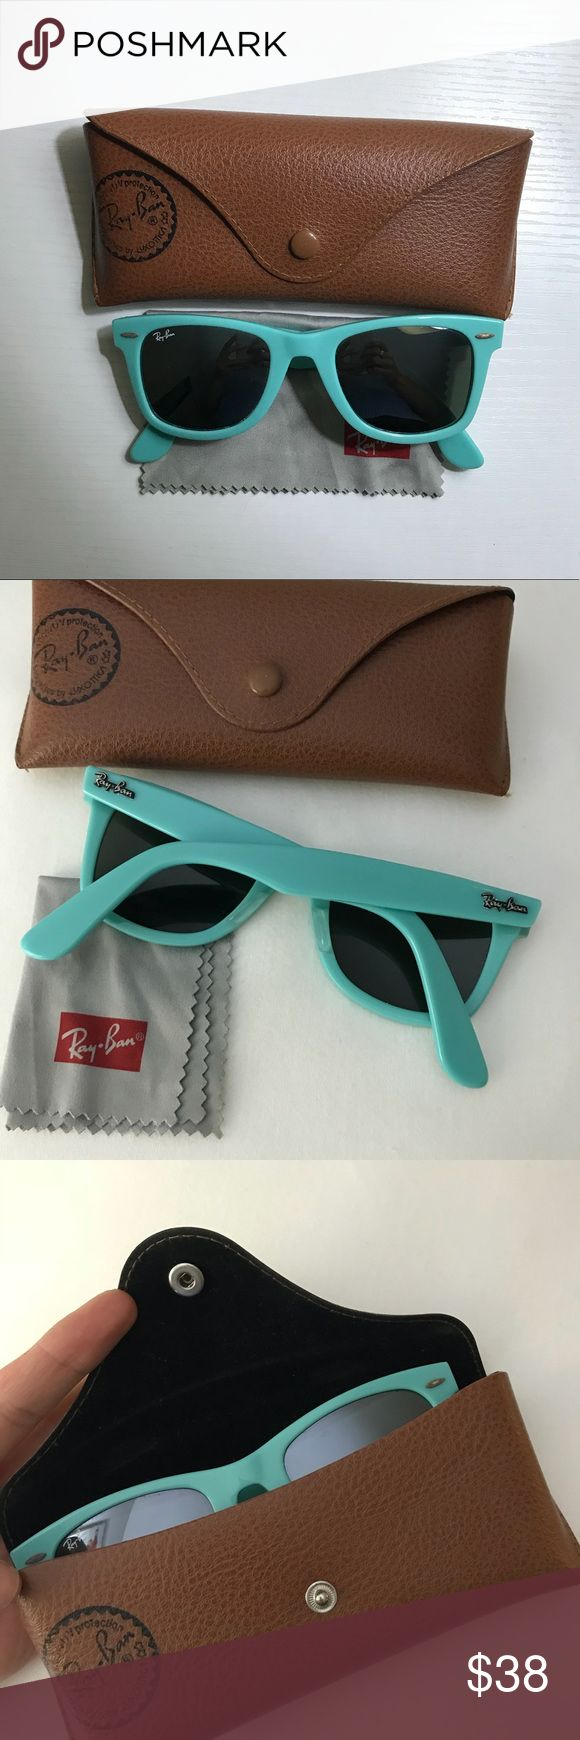 Orginal Ray-Ban Wayfarer sunglasses Orginal Ray-Ban Wayfarer sunglasses. Style RB2140 962 with polarized lens. Amazing condition, lightly worn.   Light blue, turquoise color frame.  Comes with original case & duster. Ray-Ban Accessories Sunglasses